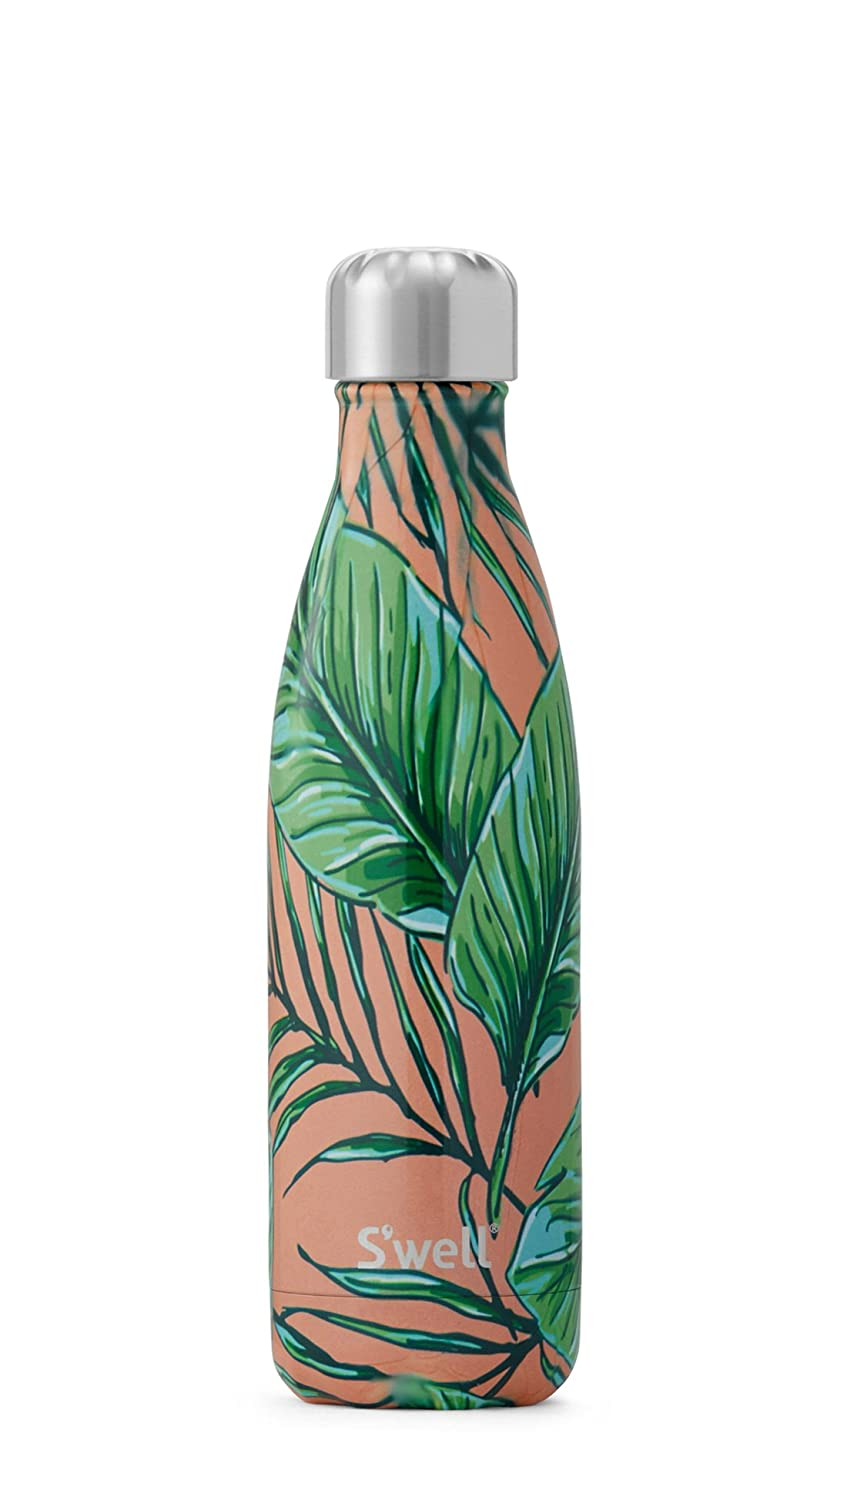 Palm Beach 17 oz S'well Vacuum Insulated Stainless Steel Water Bottle, Double Wall, 17 oz, Sundance